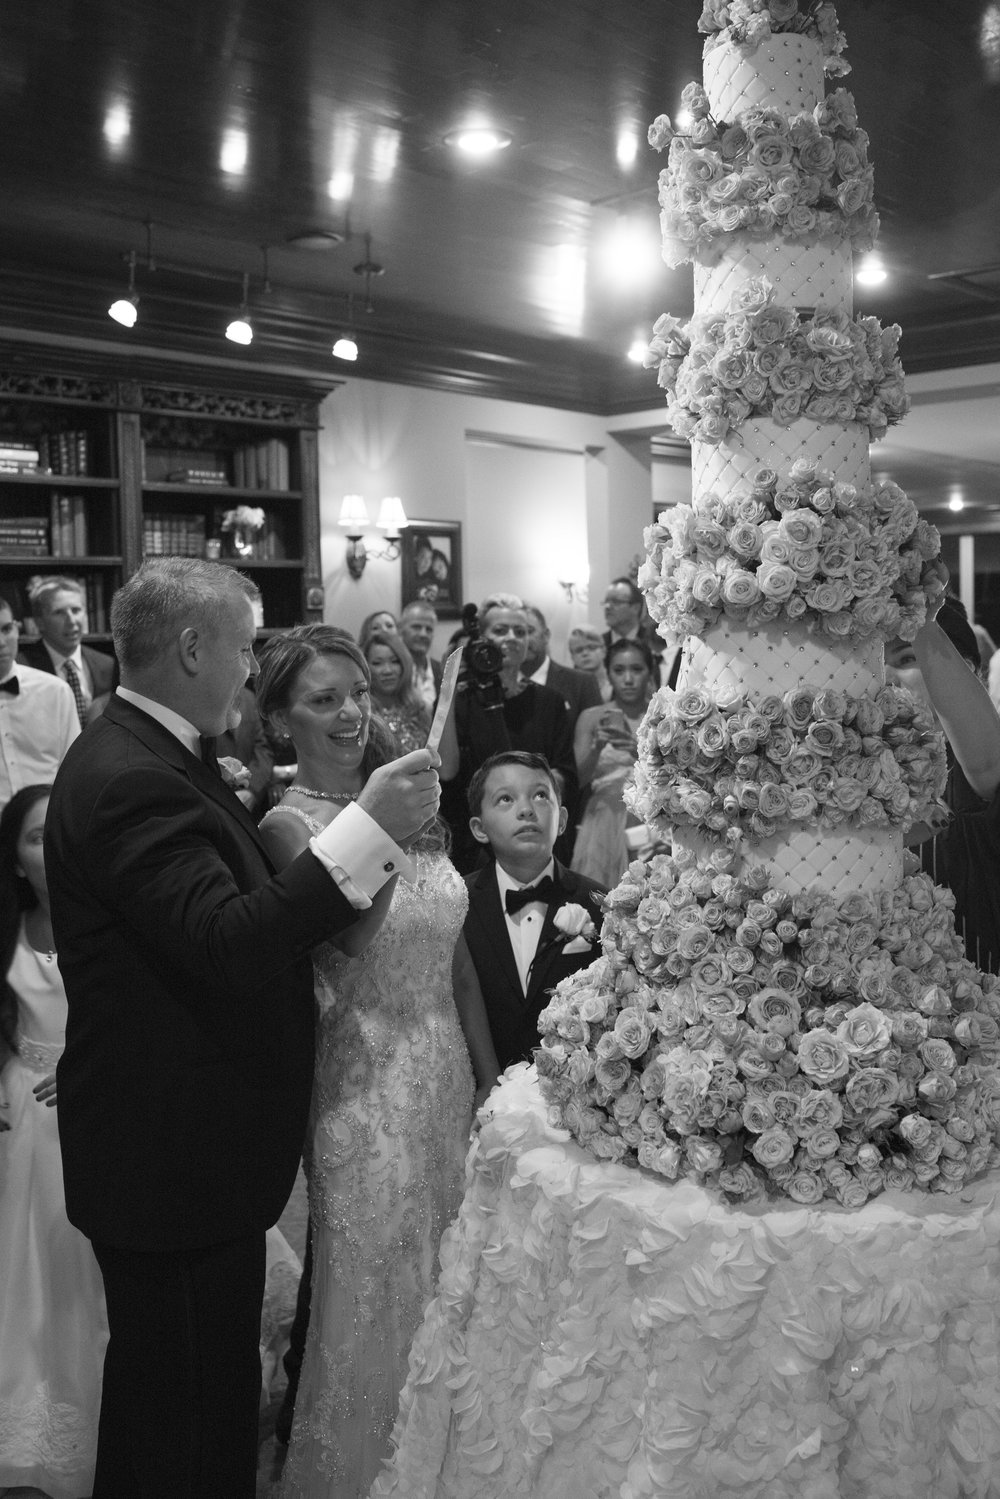 Bride & Groom cut the cake.  9 tiere 6 ft wedding cake in cinderella fairytale wedding. Luxury Las Vegas Wedding Planner Andrea Eppolito.  Image by AltF Photography.